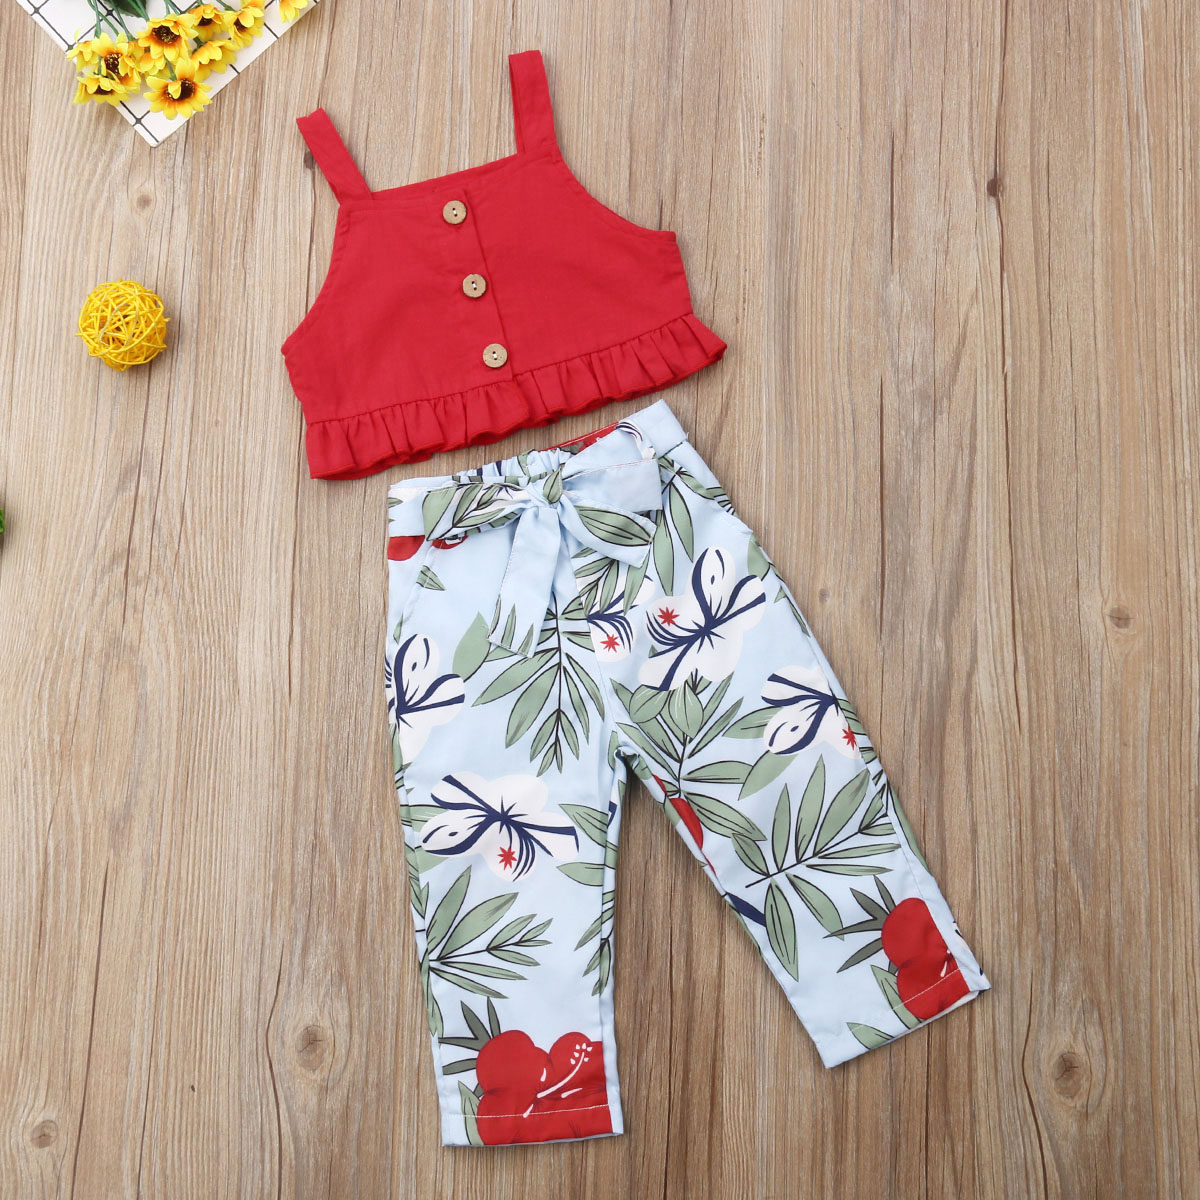 2019 Summer Toddler Baby Girl Clothes Sleeveless Ruffles Crop Top Floral Pants Outfits Casual Kid Baby Girl Clothing Set new in Clothing Sets from Mother Kids